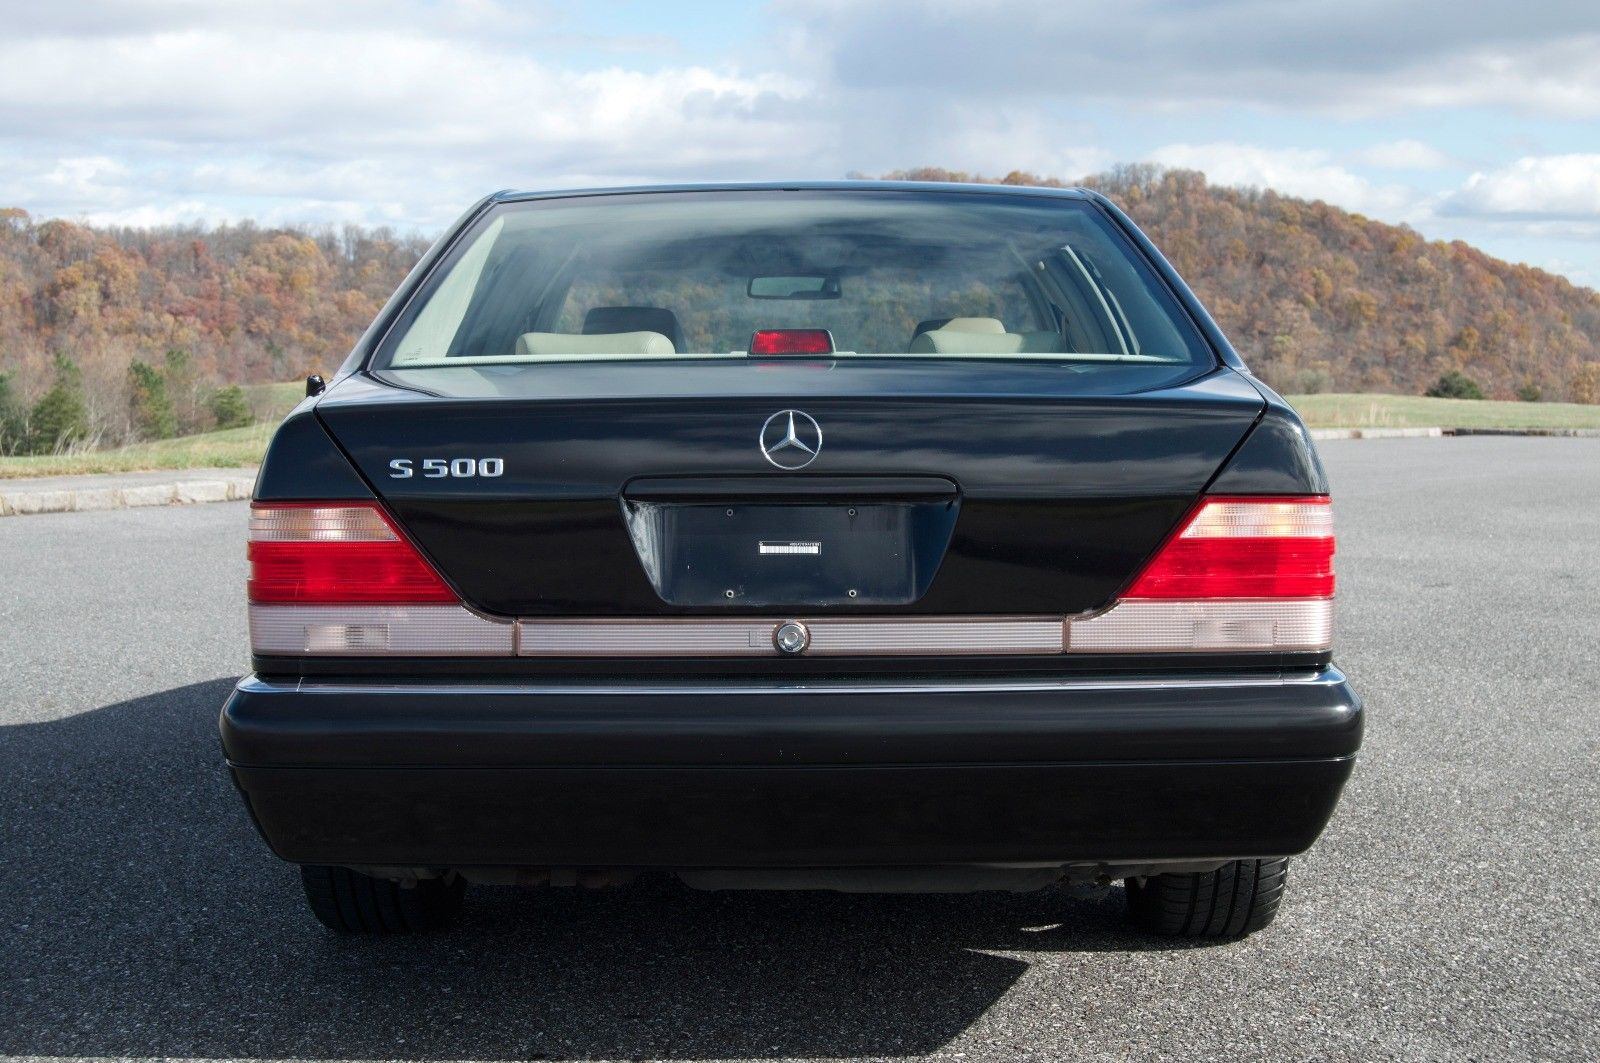 1999 Mercedes-Benz S500 Grand Edition - German Cars For ...